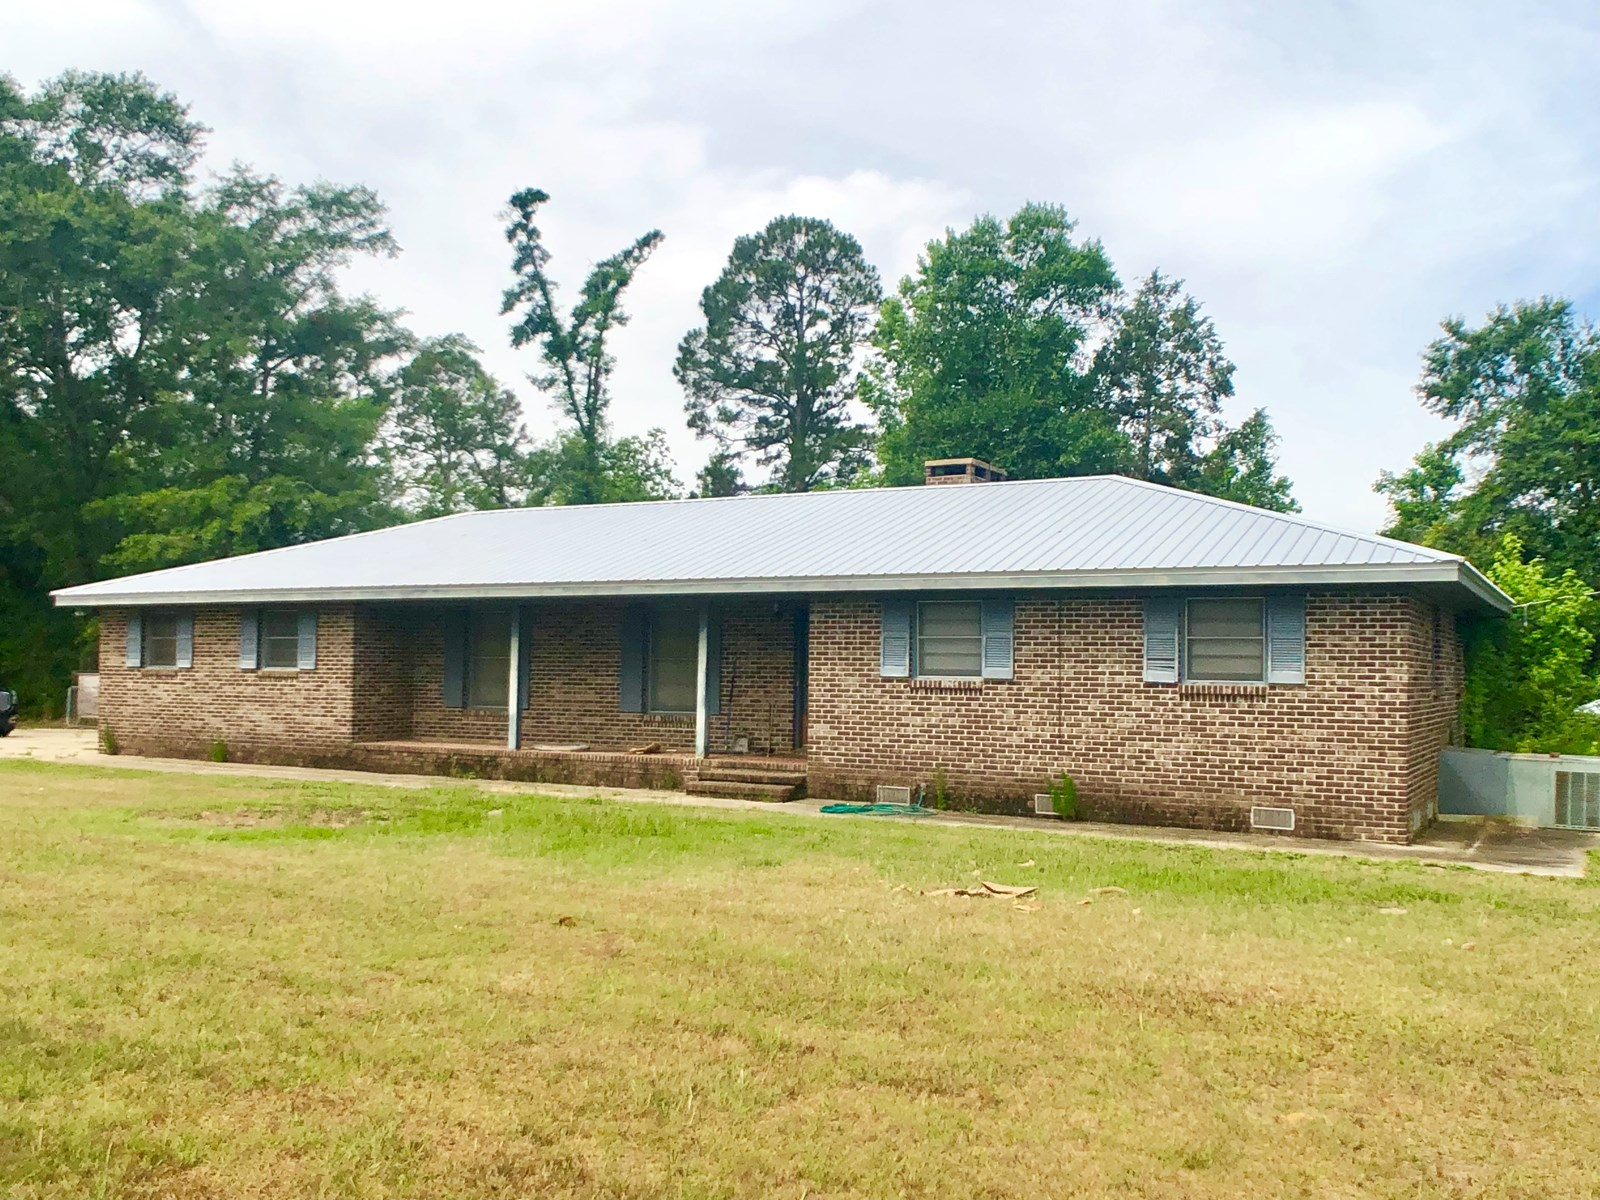 3B/2.5B HOME AND 38 ACRES FOR SALE IN HARTFORD, ALABAMA